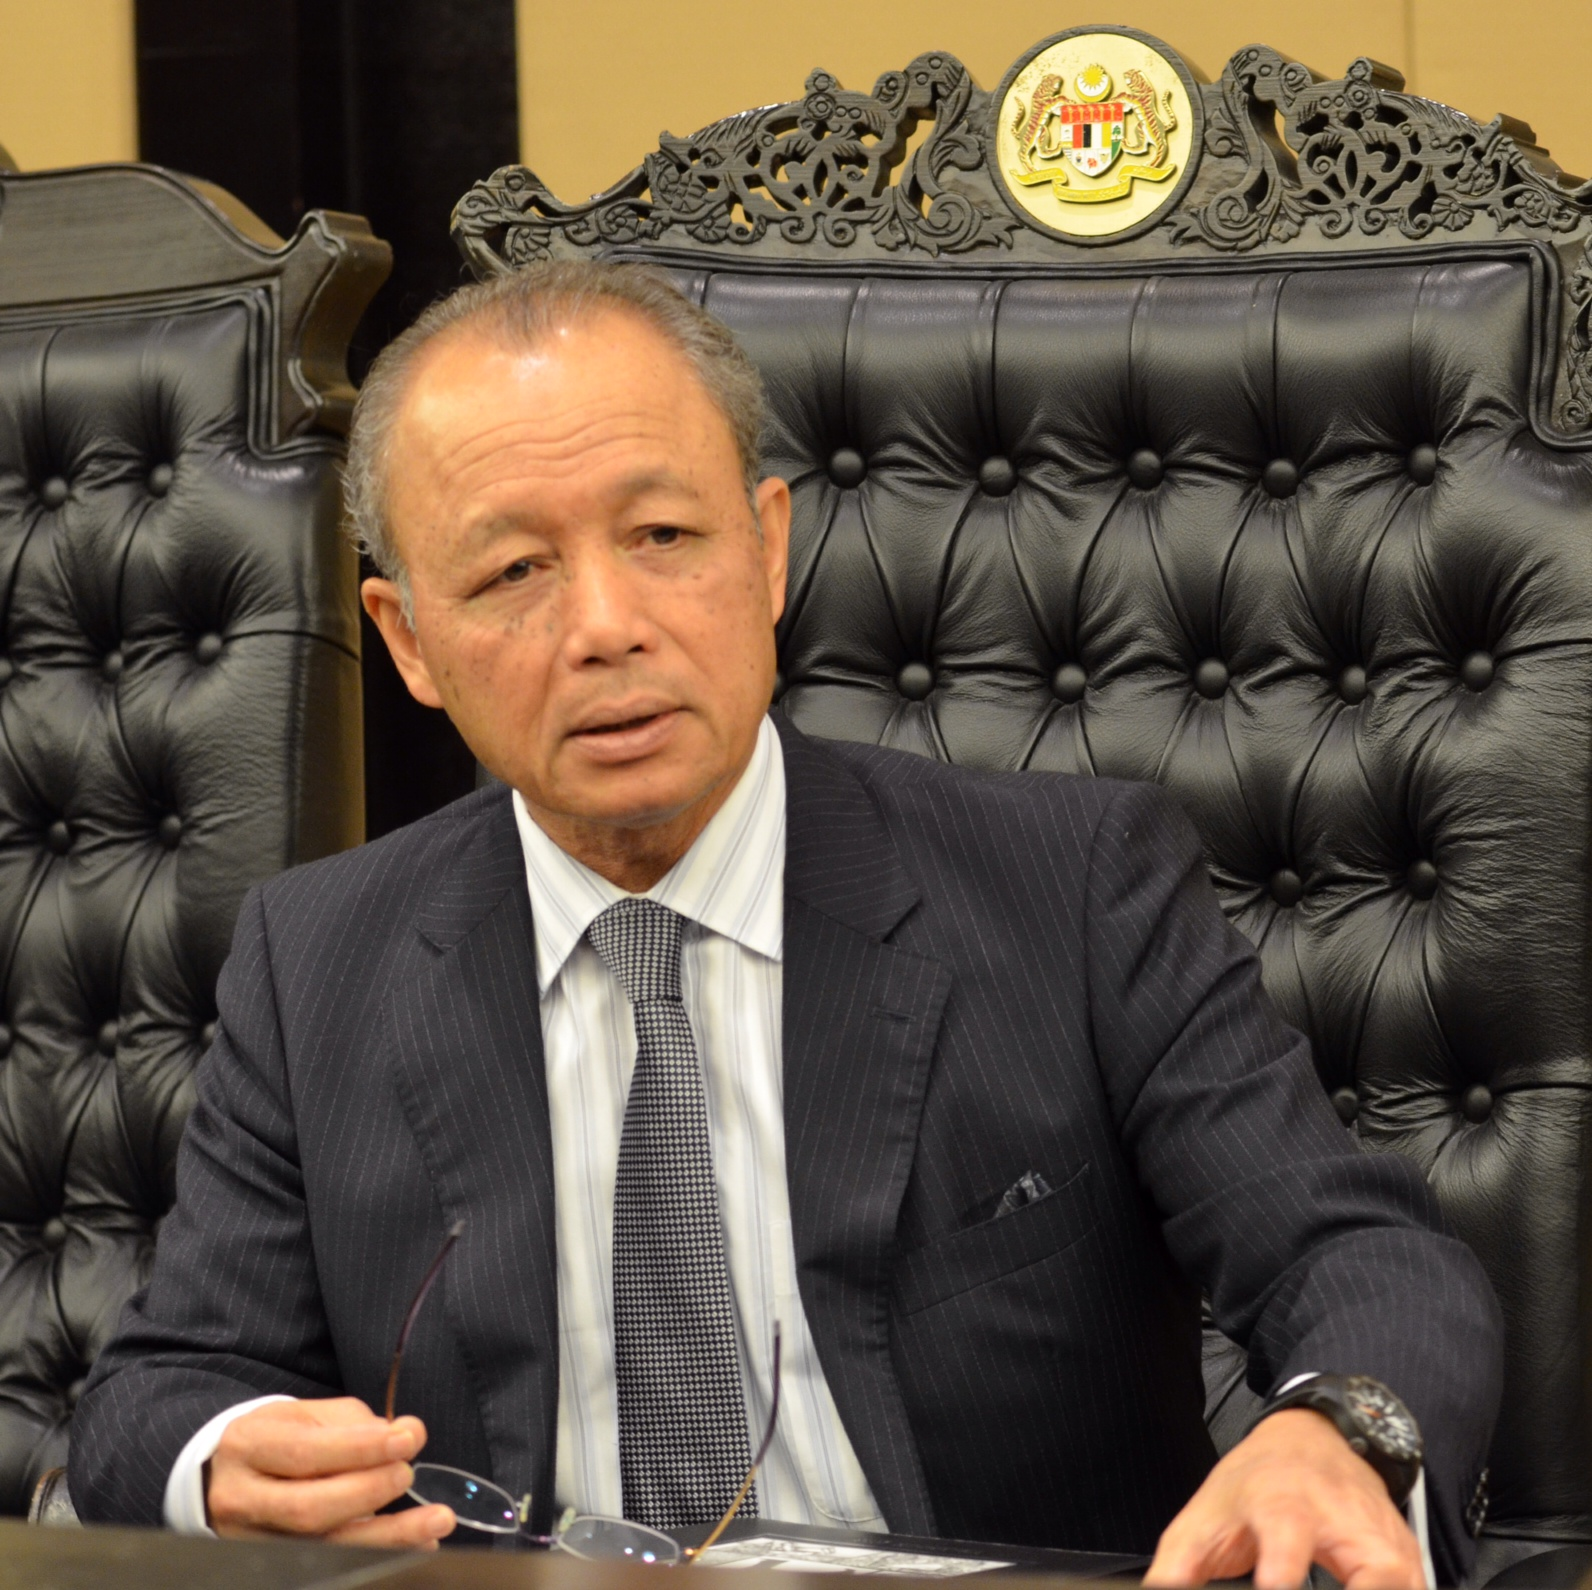 Datuk lawrence thien